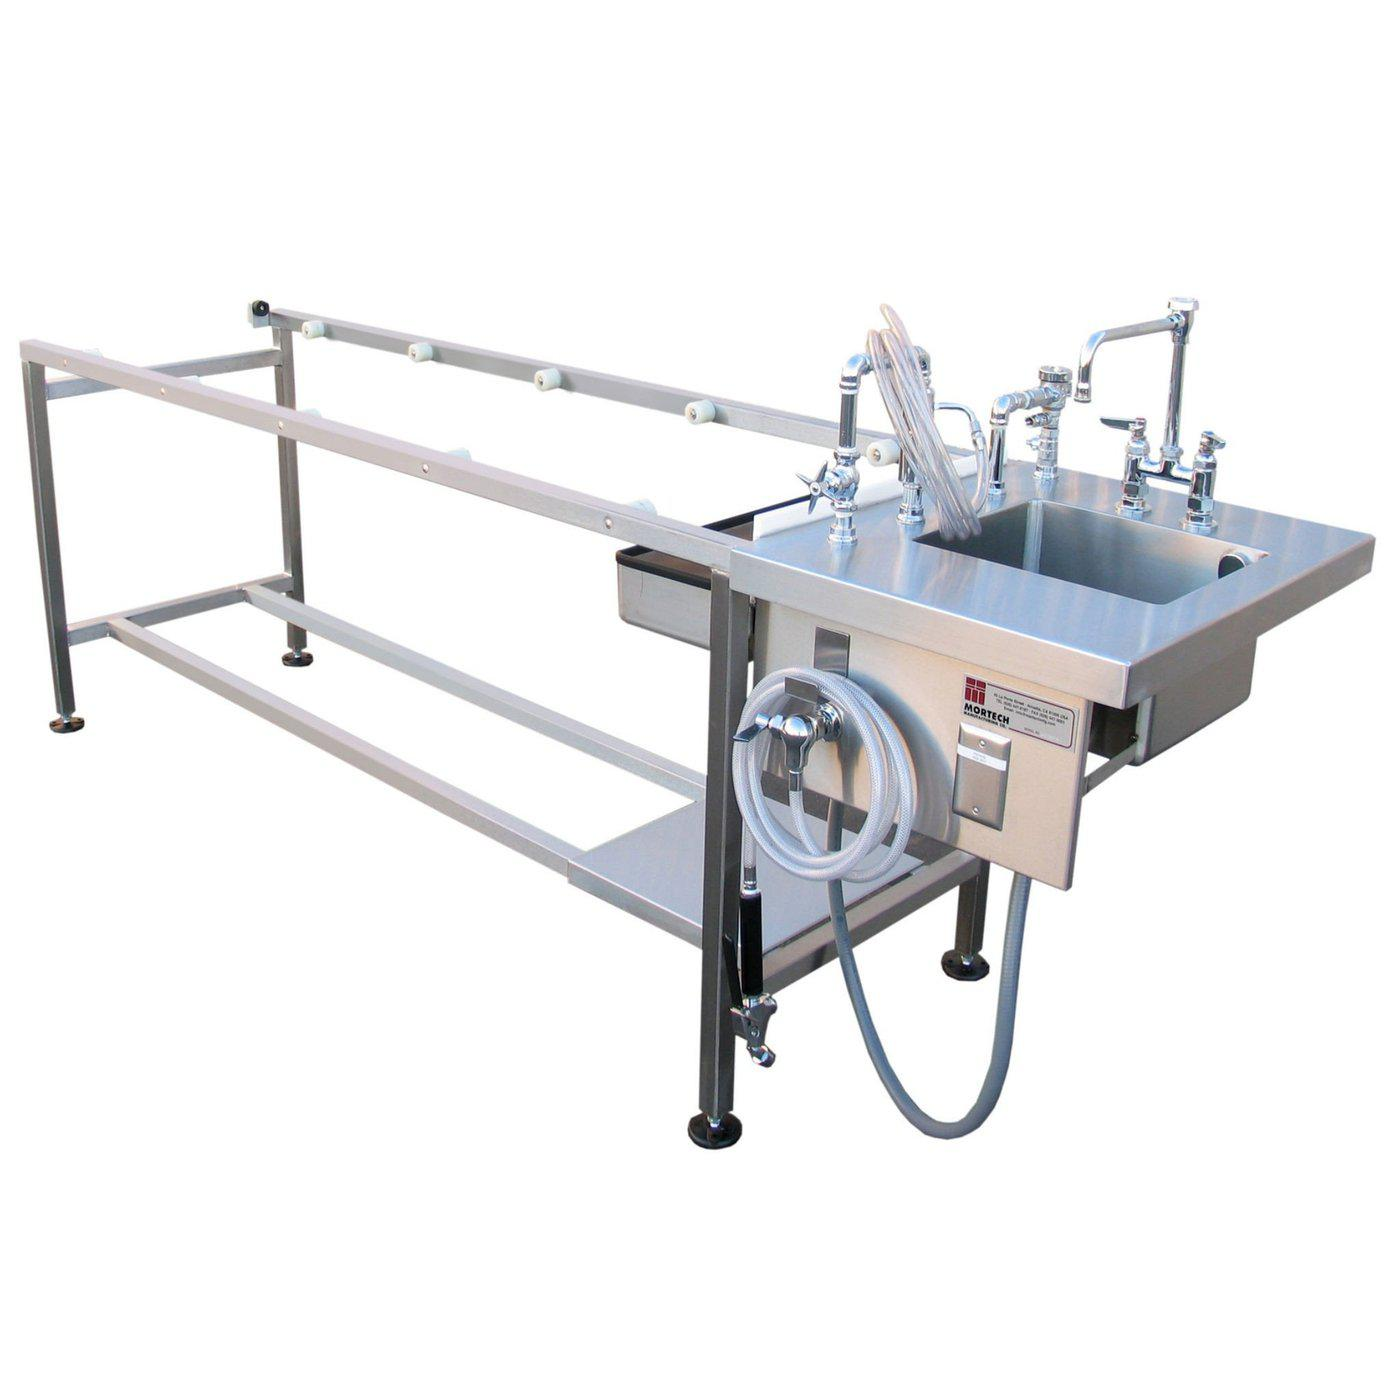 Autopsy Table with Rollers-Pedestal Autopsy Tables-Mortech Manufacturing Company Inc. Quality Stainless Steel Autopsy, Morgue, Funeral Home, Necropsy, Veterinary / Anatomy, Dissection Equipment and Accessories